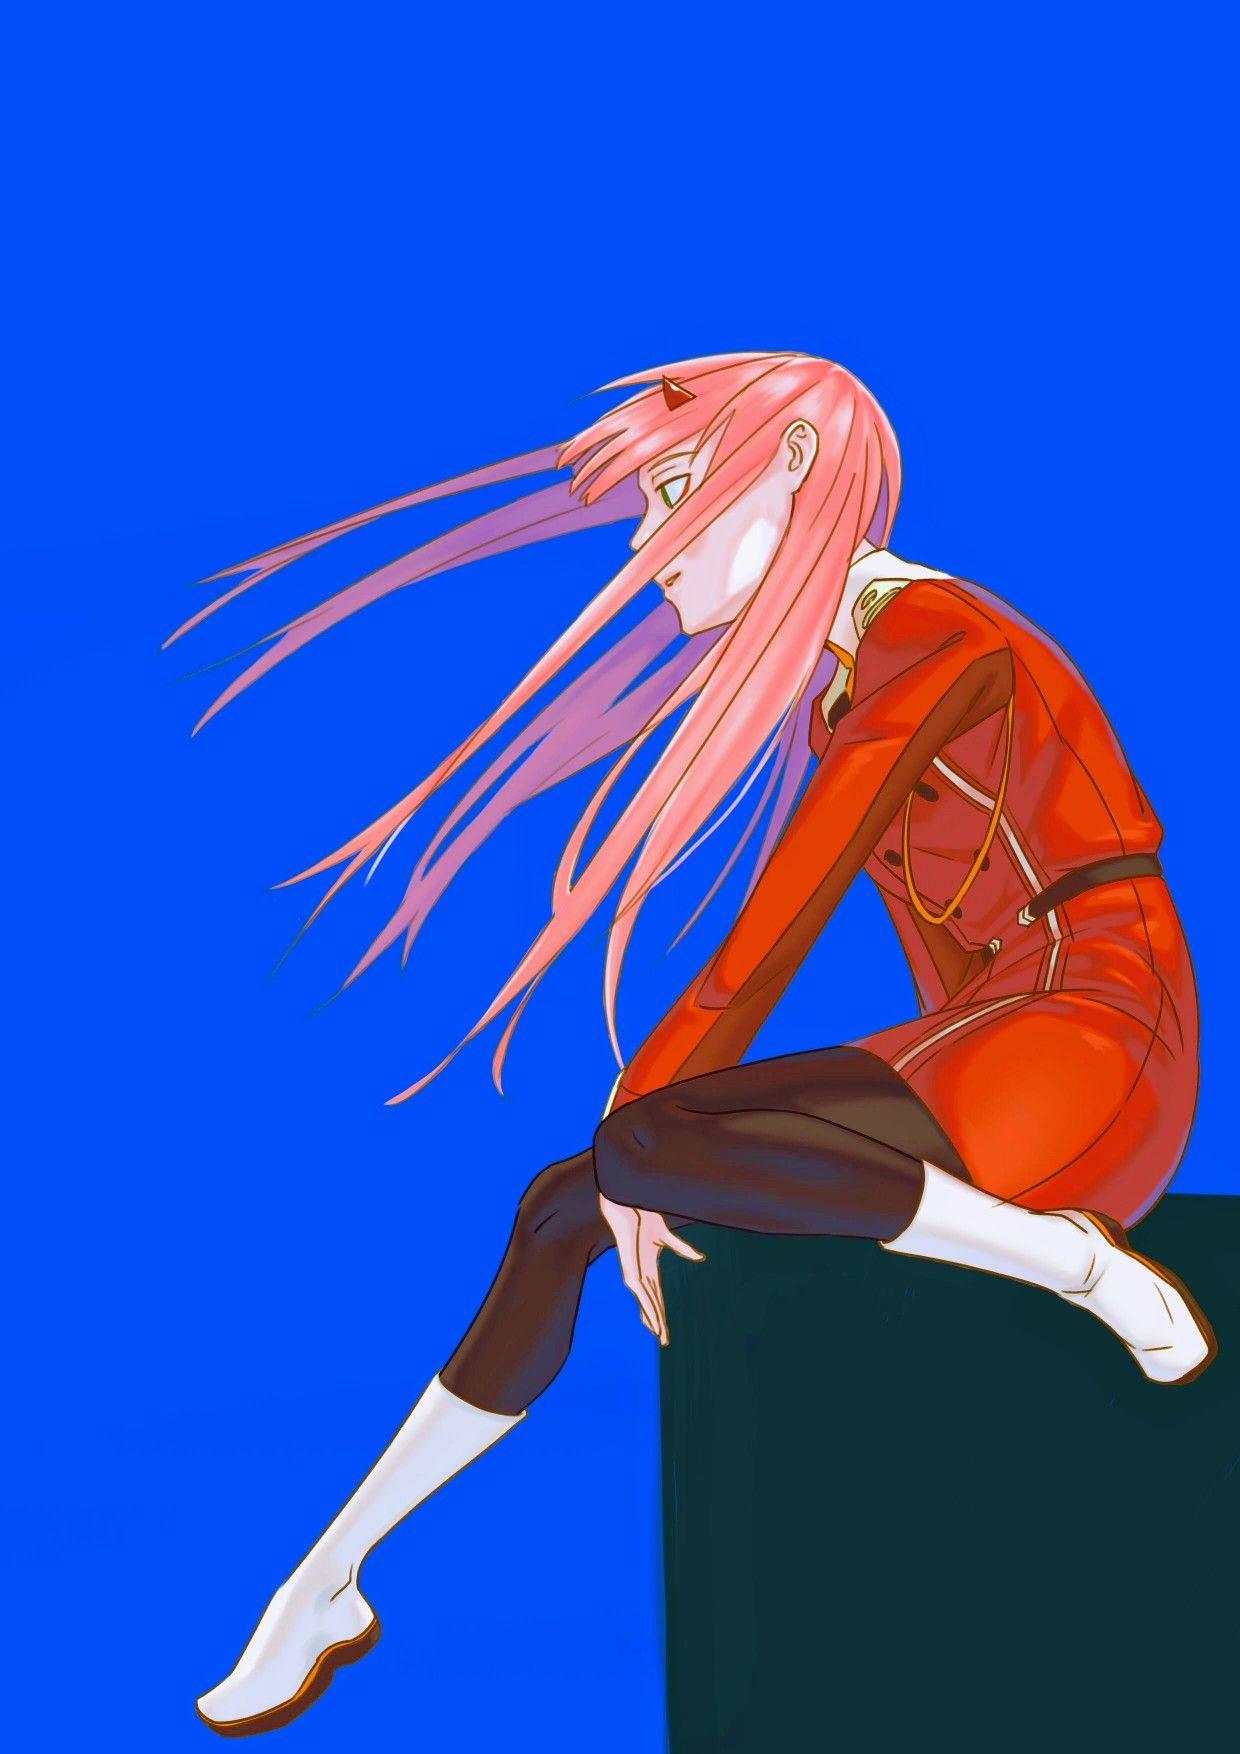 Zero Two Darling in the FranXX GG anime Personagem